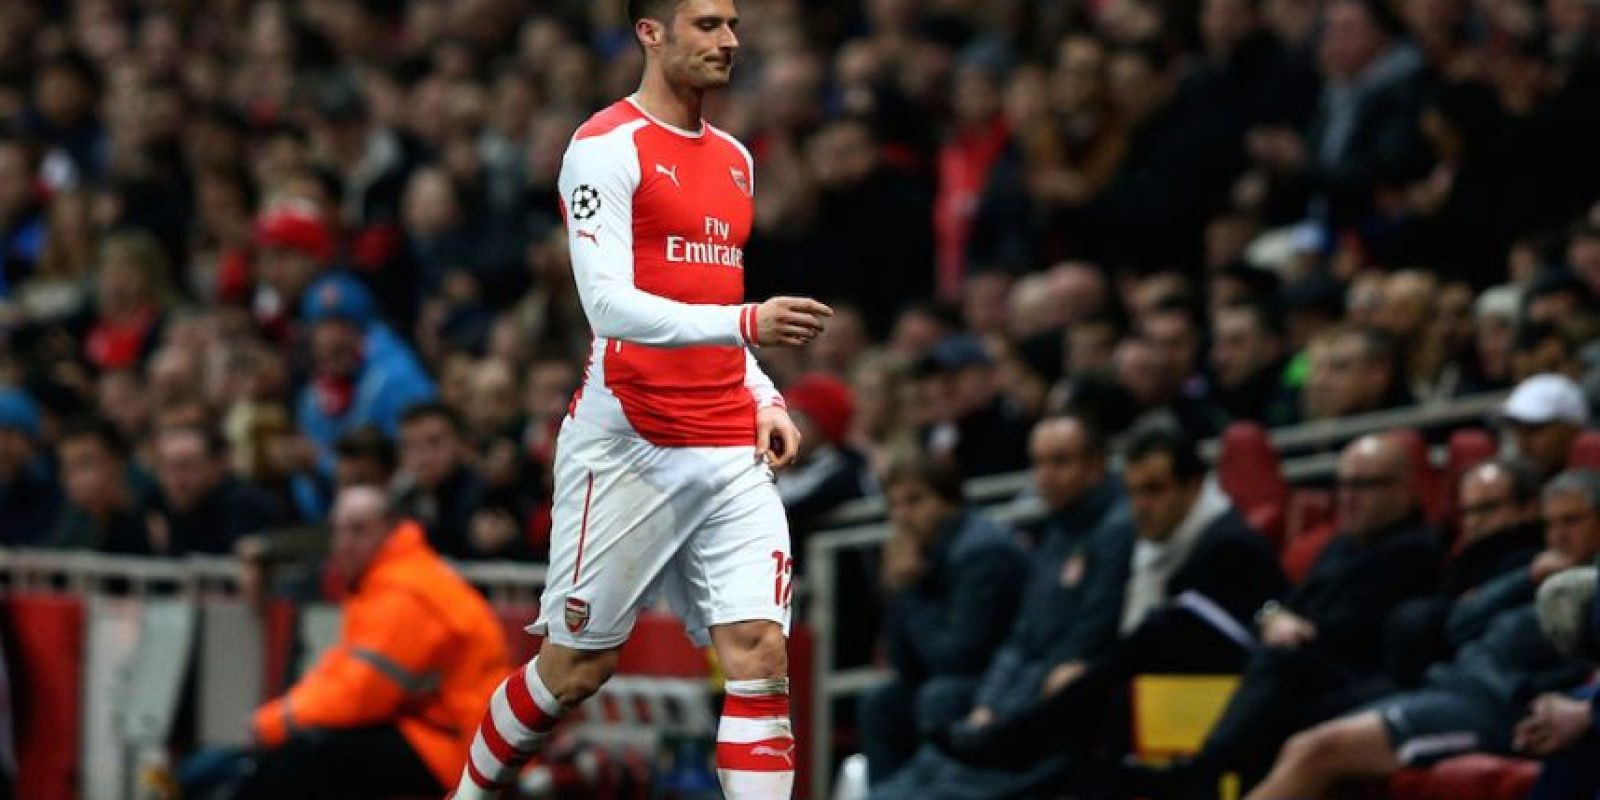 Oliver Giroud no pudo hacer daño a los franceses. Foto: Getty Images